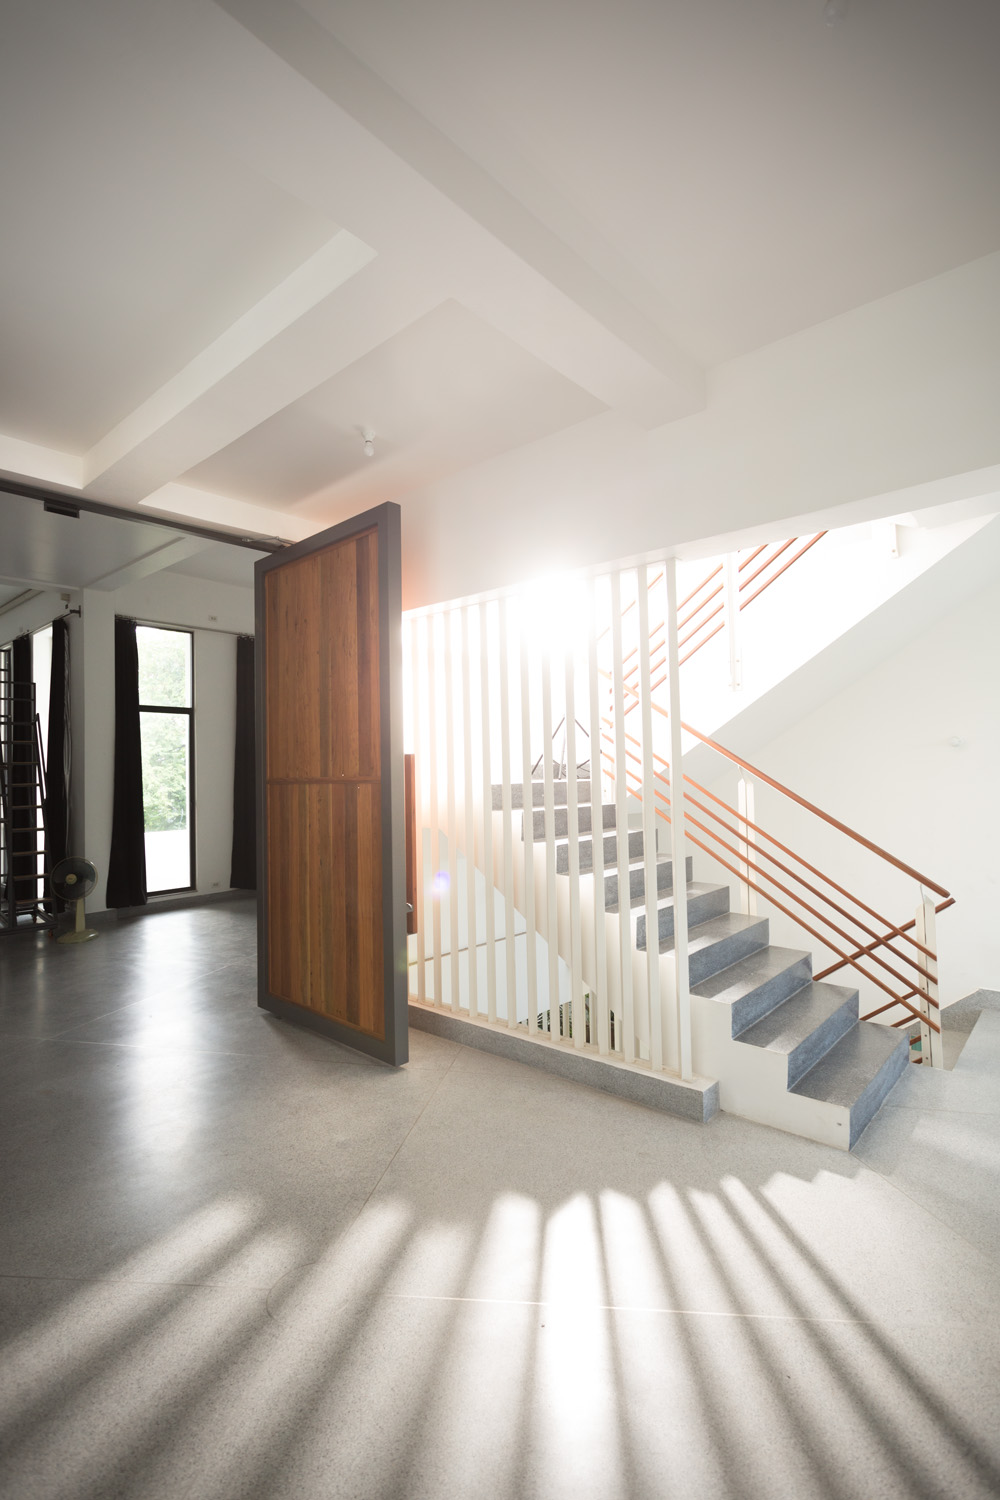 Stairs with light.jpg